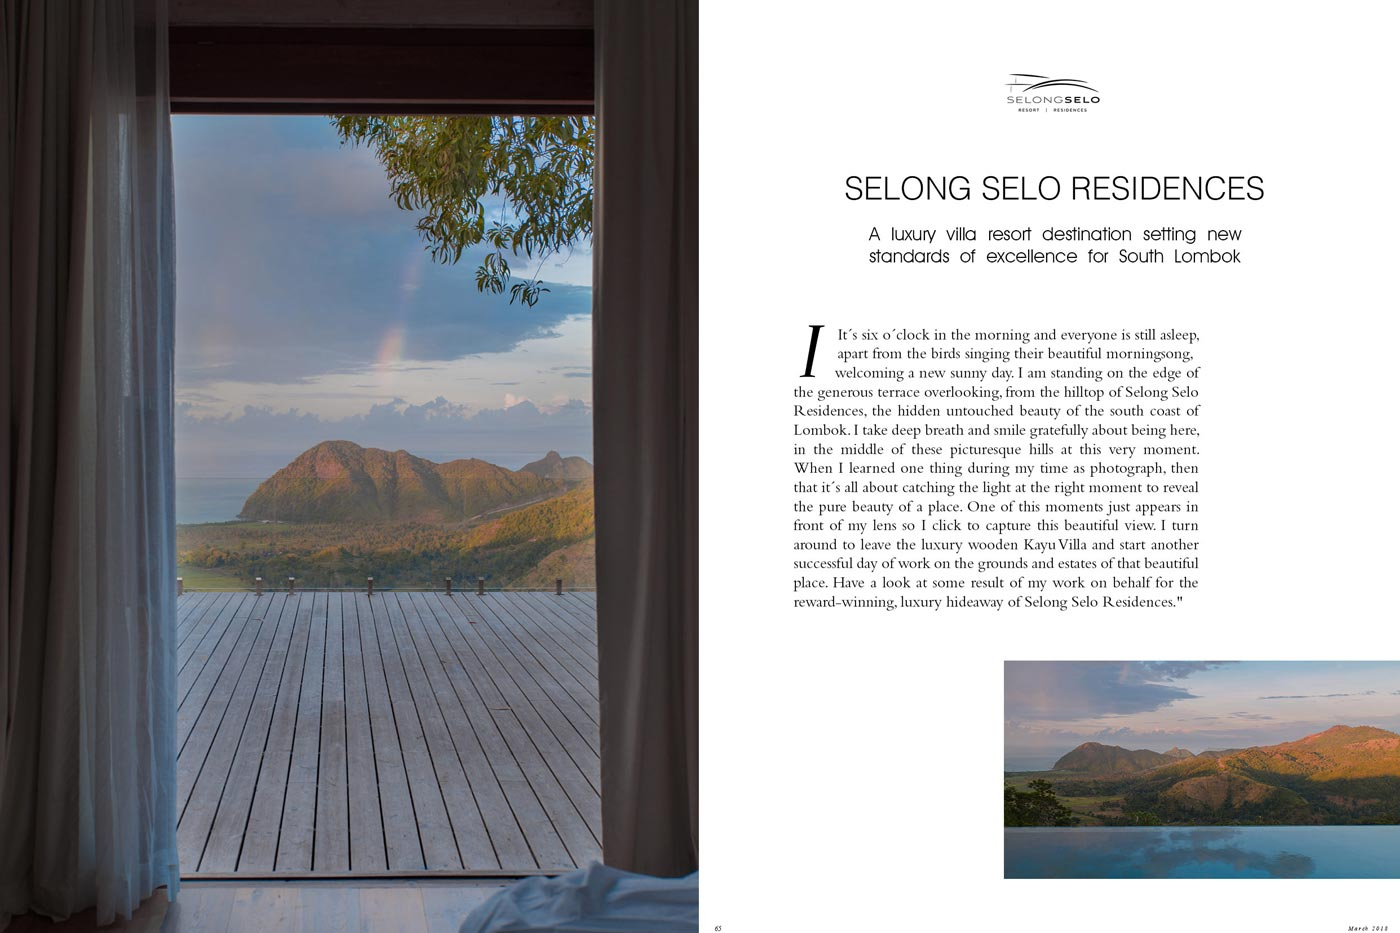 Selong Selo Resort and Residences